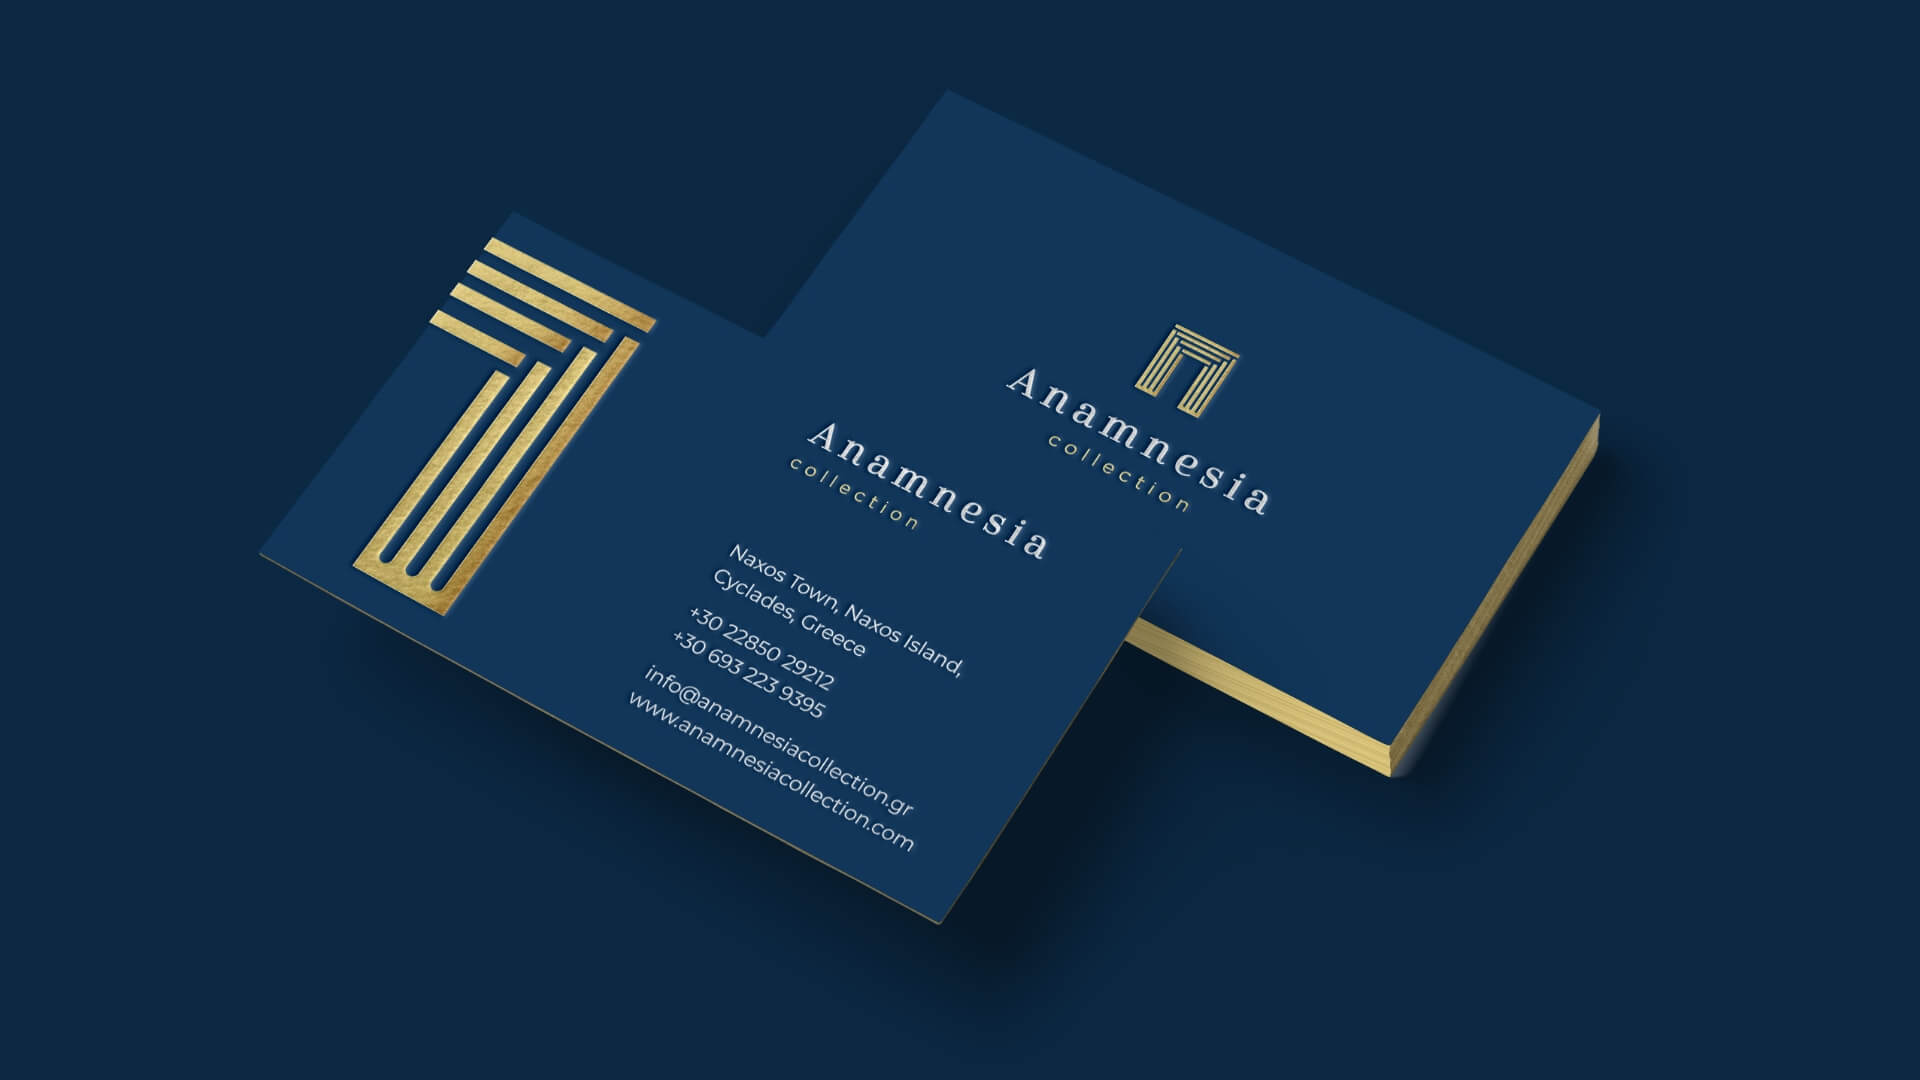 Anamnesia business card